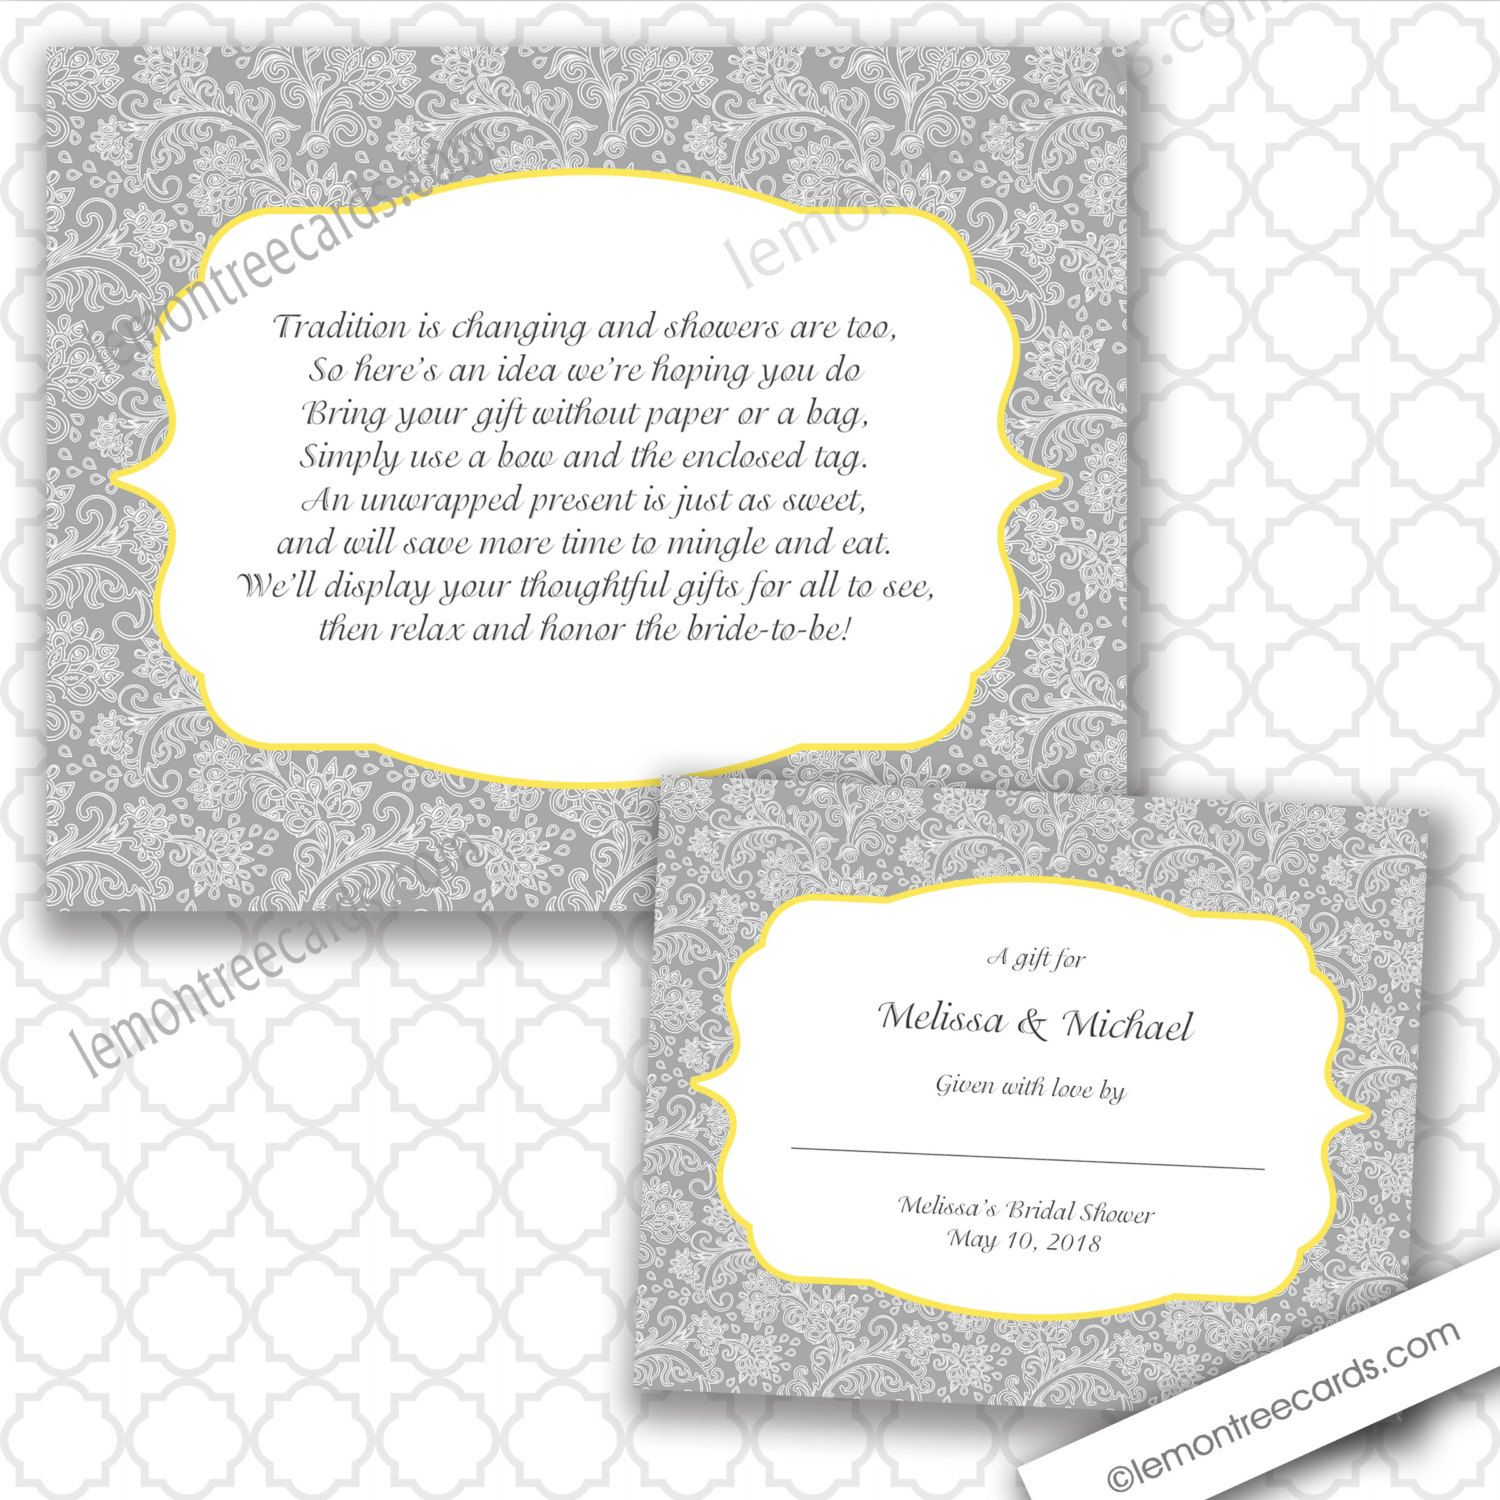 No Wrap bridal or baby shower insert and label by lemontreecards